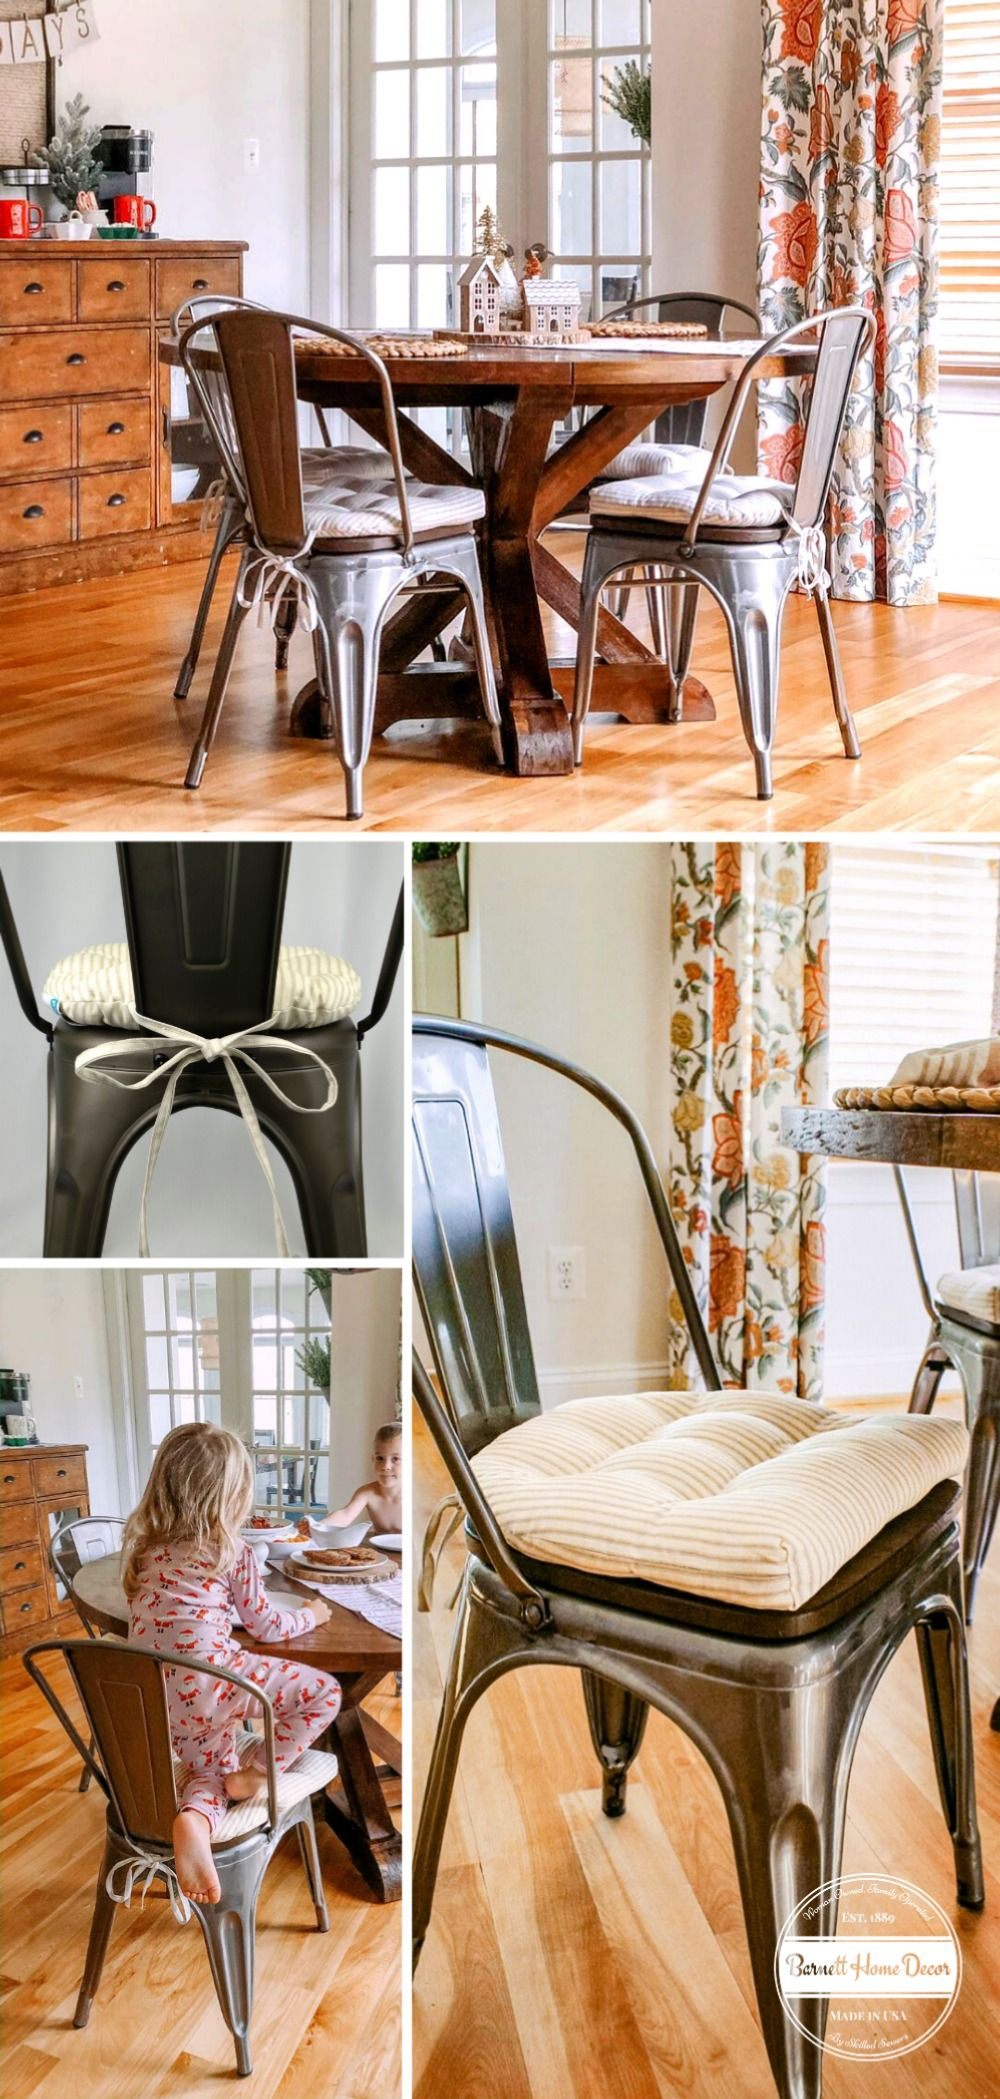 Farmhouse Decor Cushions for Industrial Tolix-Style Dining Chairs